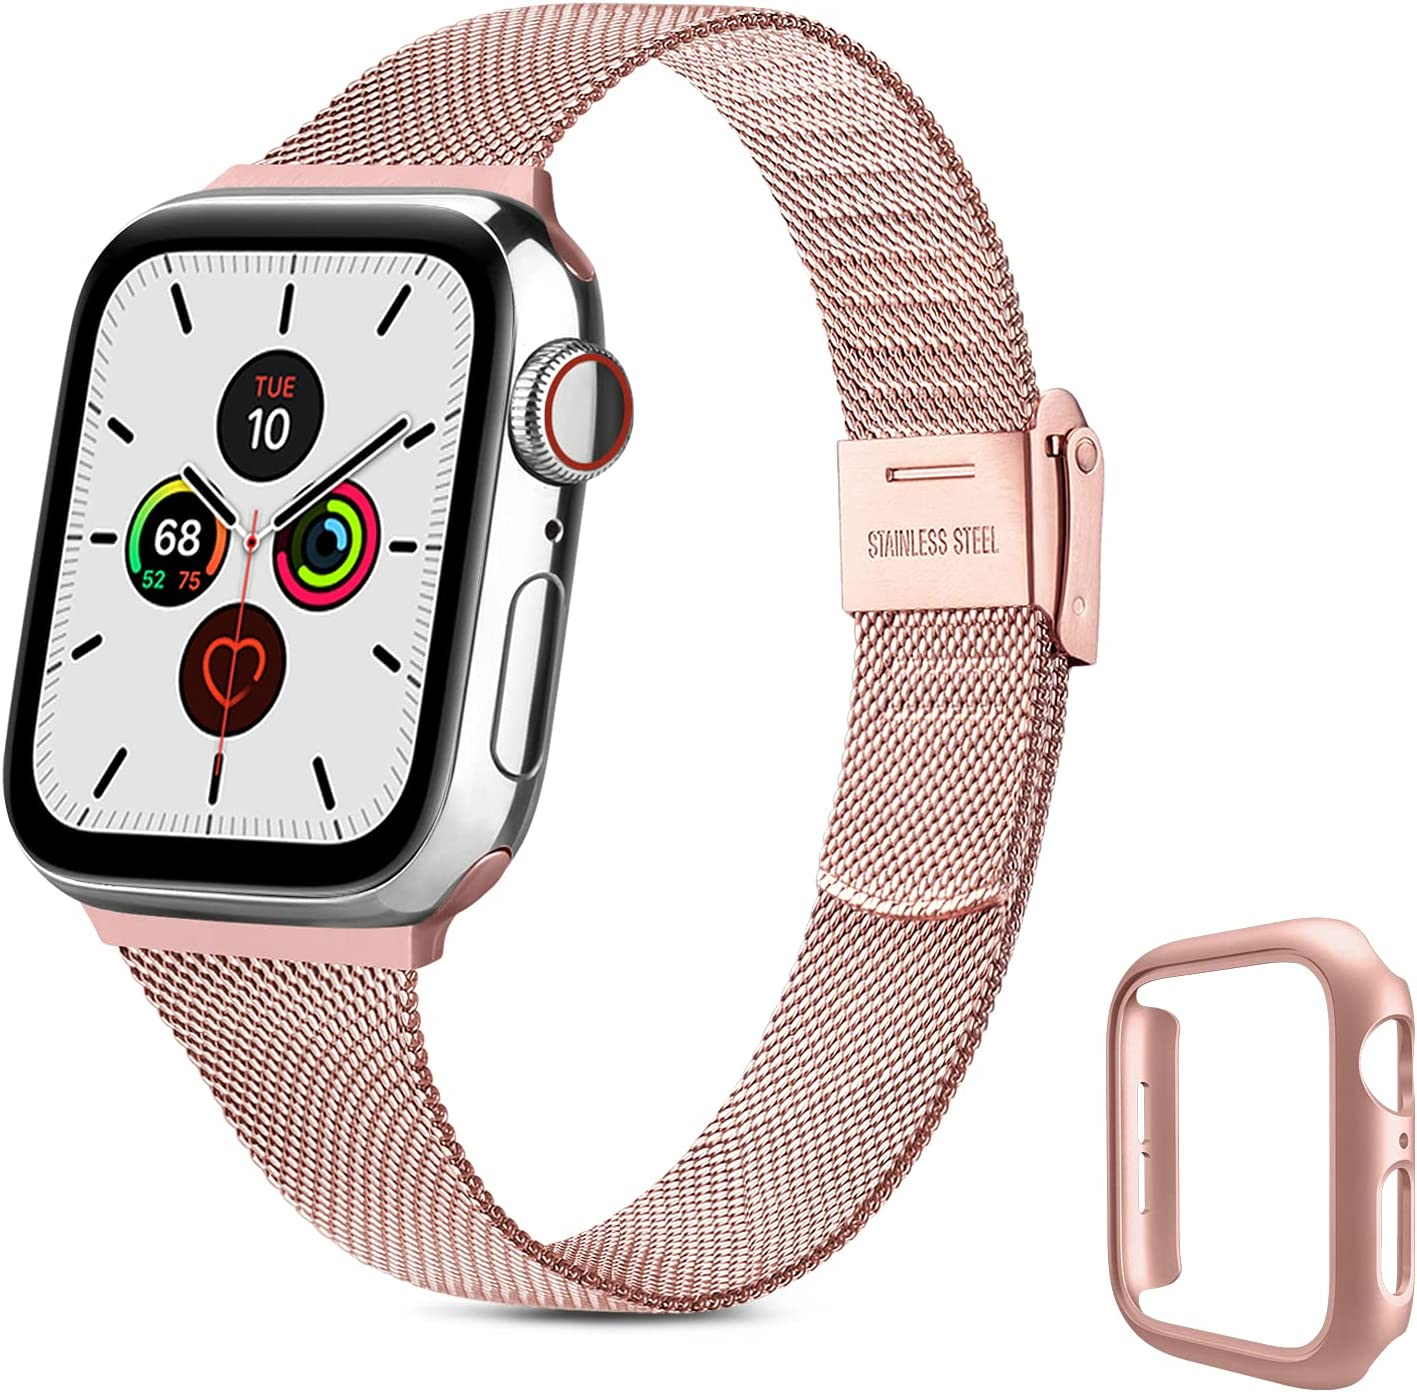 YILED Slim Bands Compatible for Apple Watch 40mm with Protective Case, Adjustable Stainless Steel Mesh Replacement Strap for iWatch SE Series 6/5/4 (Rose Pink, 40mm)